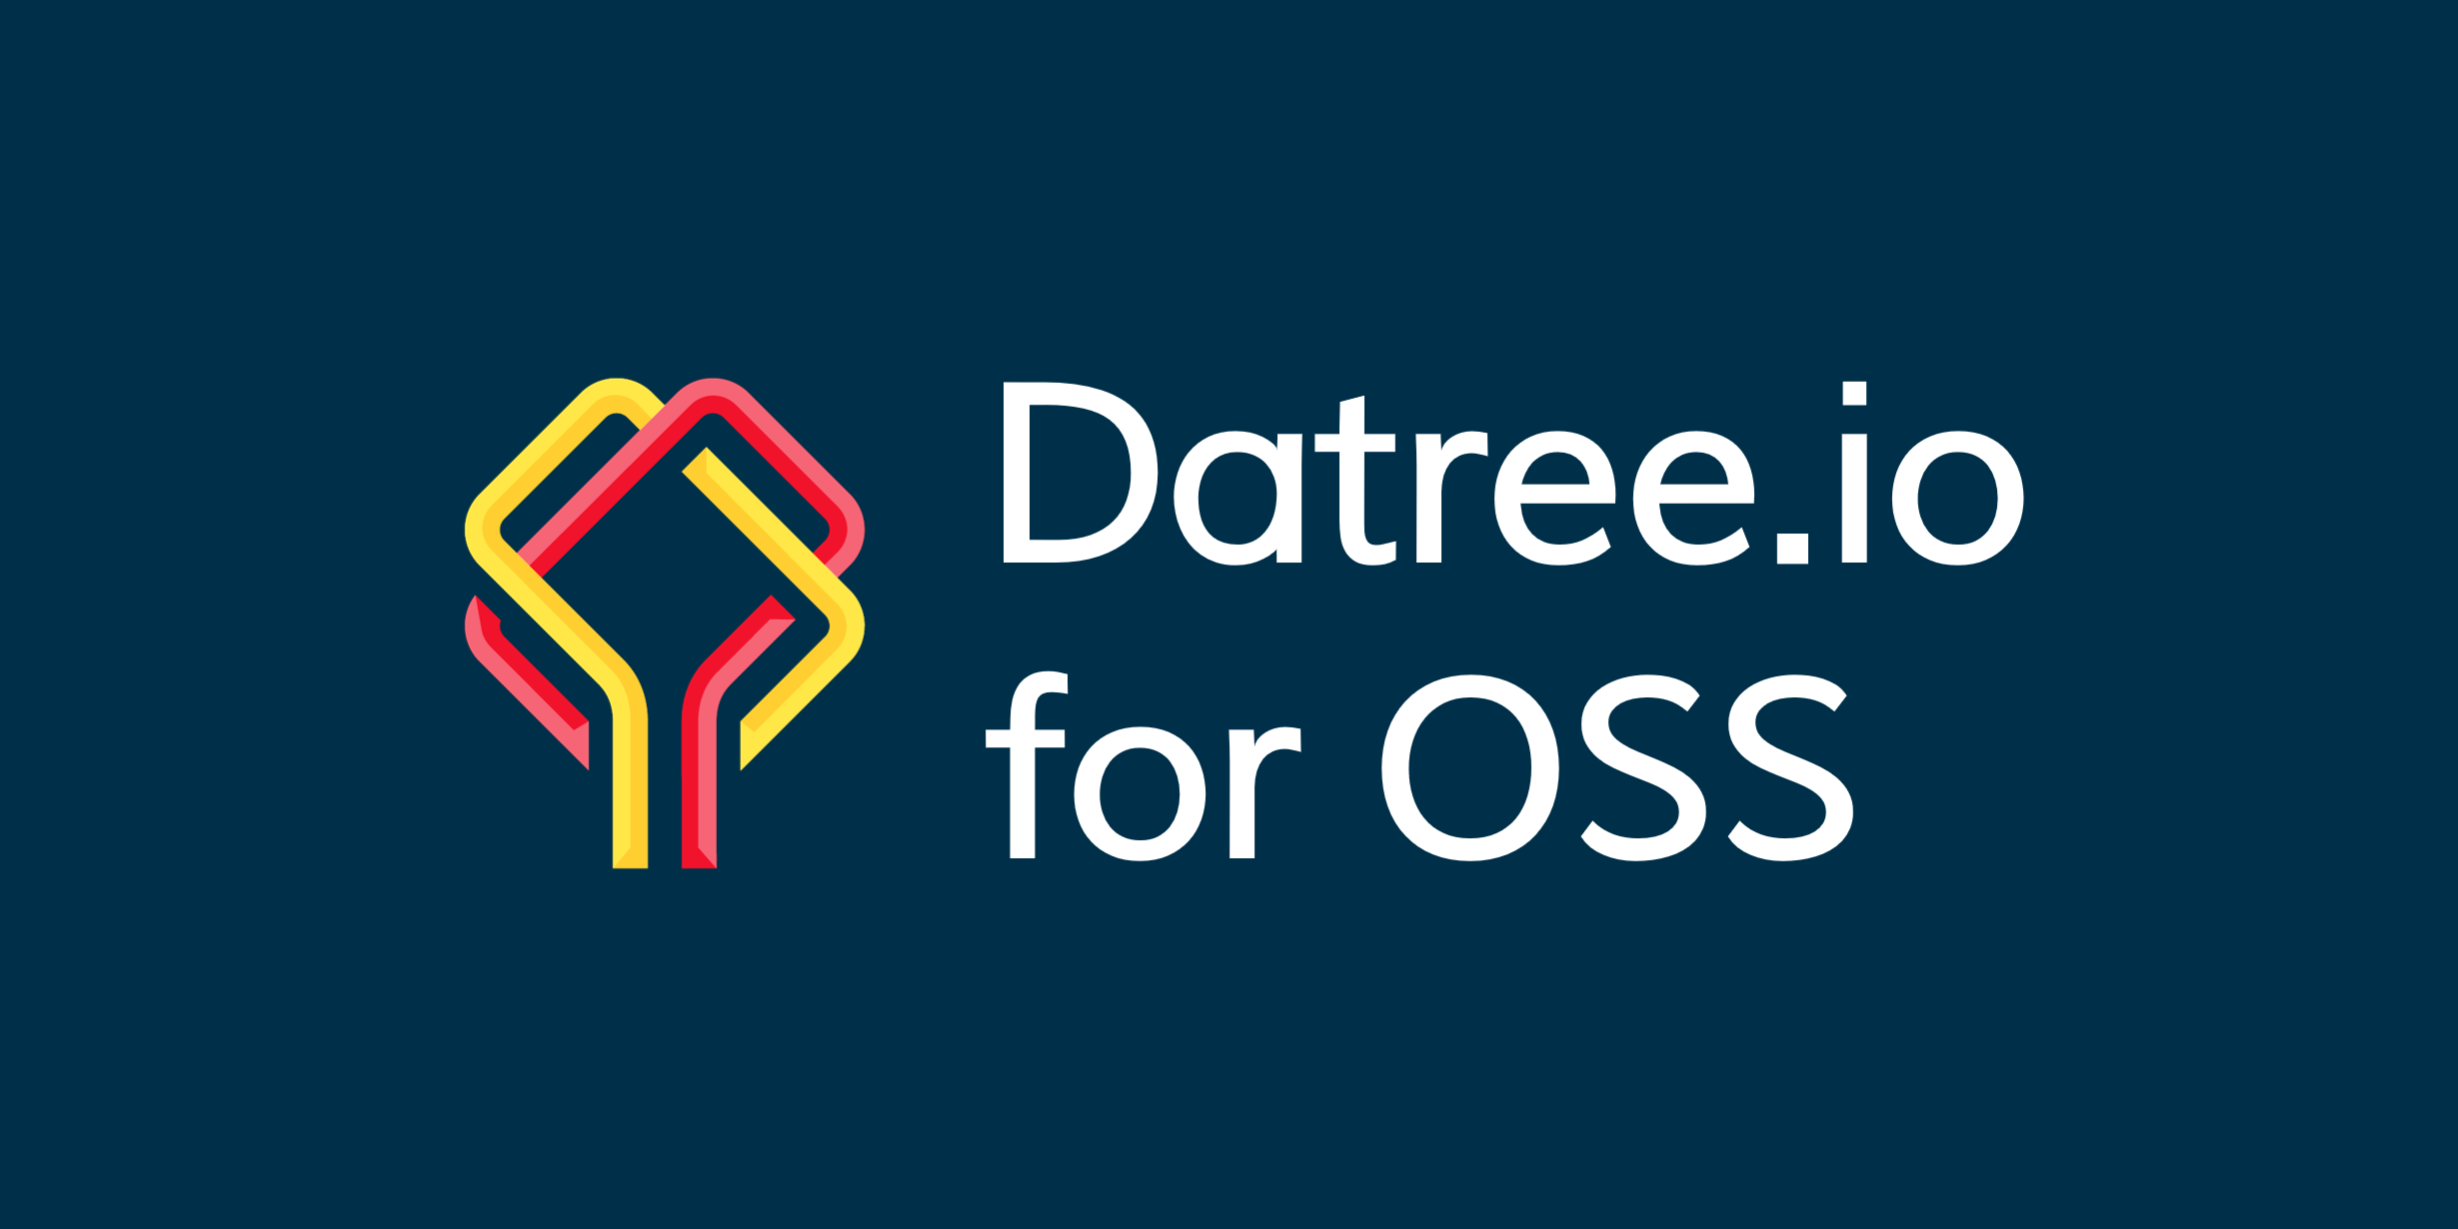 Using Datree to ensure contributors to open source projects follow maintainer's standards